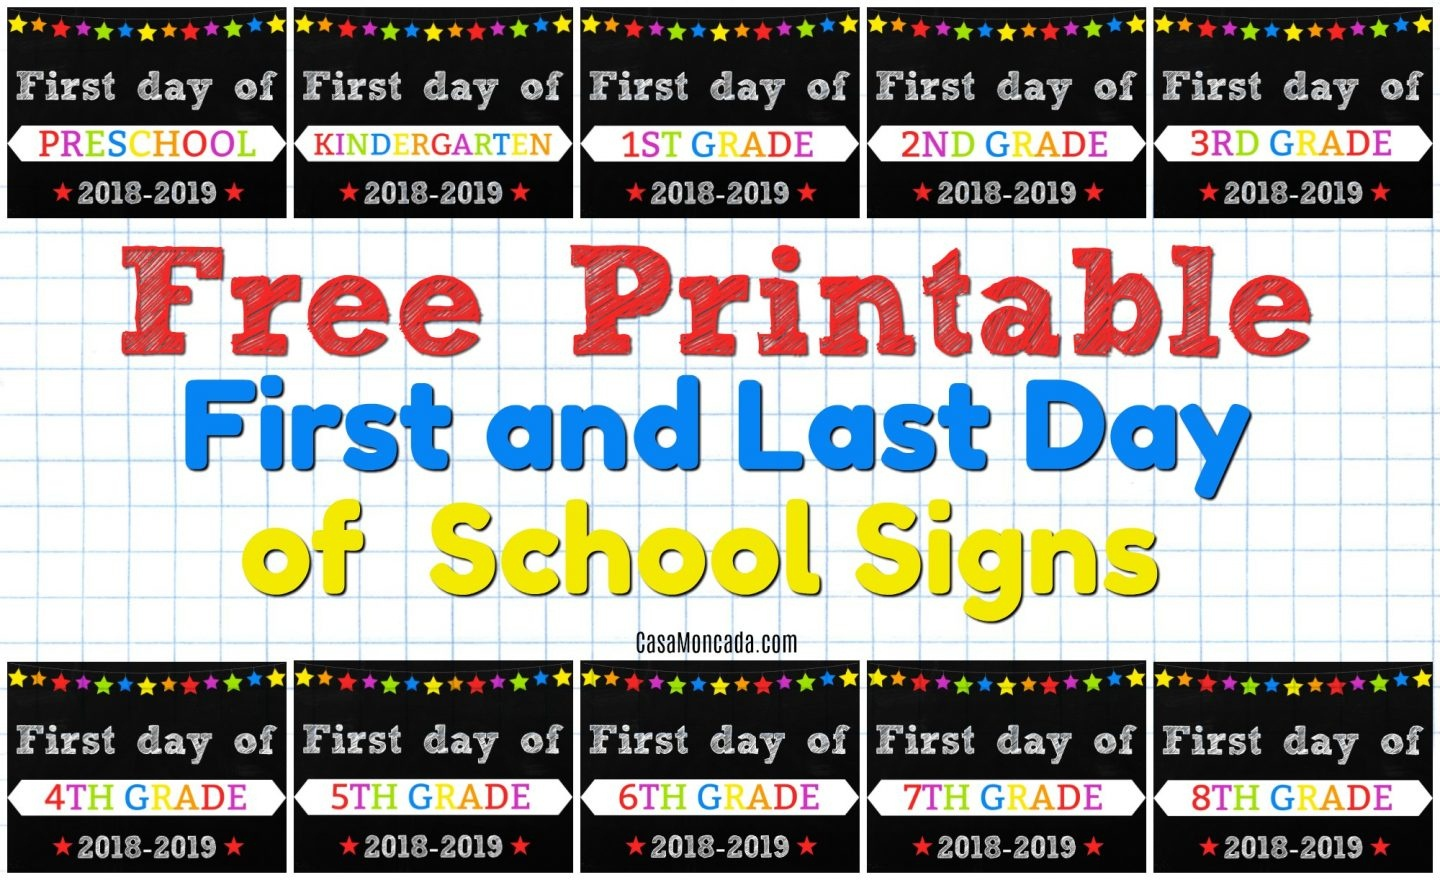 Free Printable First And Last Day Of School Signs - Casa Moncada - First Day Of School Sign Free Printable